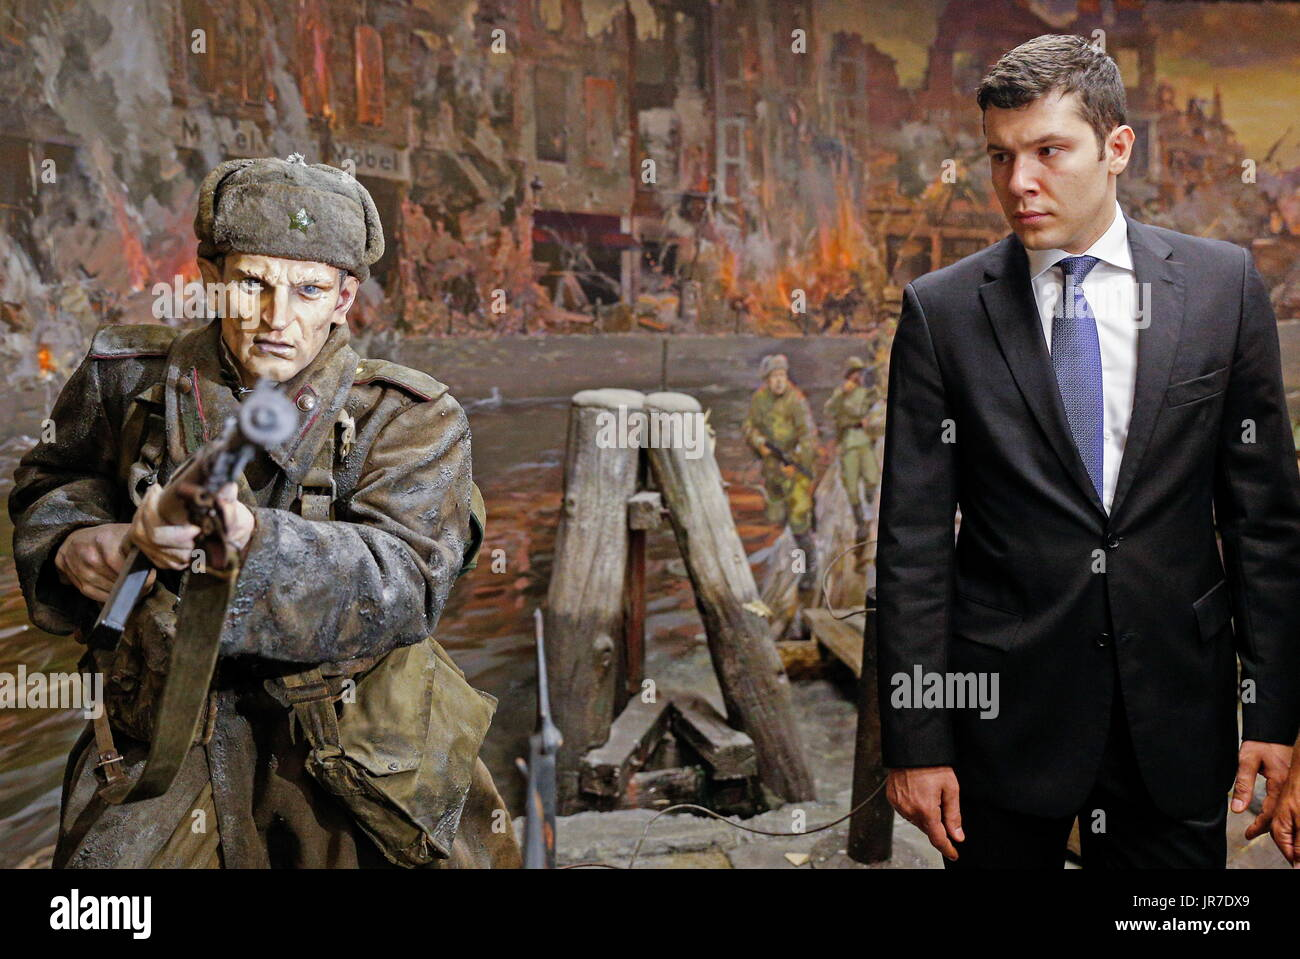 Kaliningrad Region, Russia. 3rd Aug, 2017. The acting governor of Kaliningrad Region, Anton ALikhanov (R), views a 3-dimensional panoramic exhibition titled 'Konigsberg 1945: the Final Assault' at the Kaliningrad Region Museum of History and Arts; the 360-degree display, which depicts the April 1945 assault by the Red Army on the city of Konigsberg in WWII, is an artwork by the Nevsky Batalist team led by Dmitry Poshtarenko. Credit: Vitaly Nevar/TASS/Alamy Live News - Stock Image